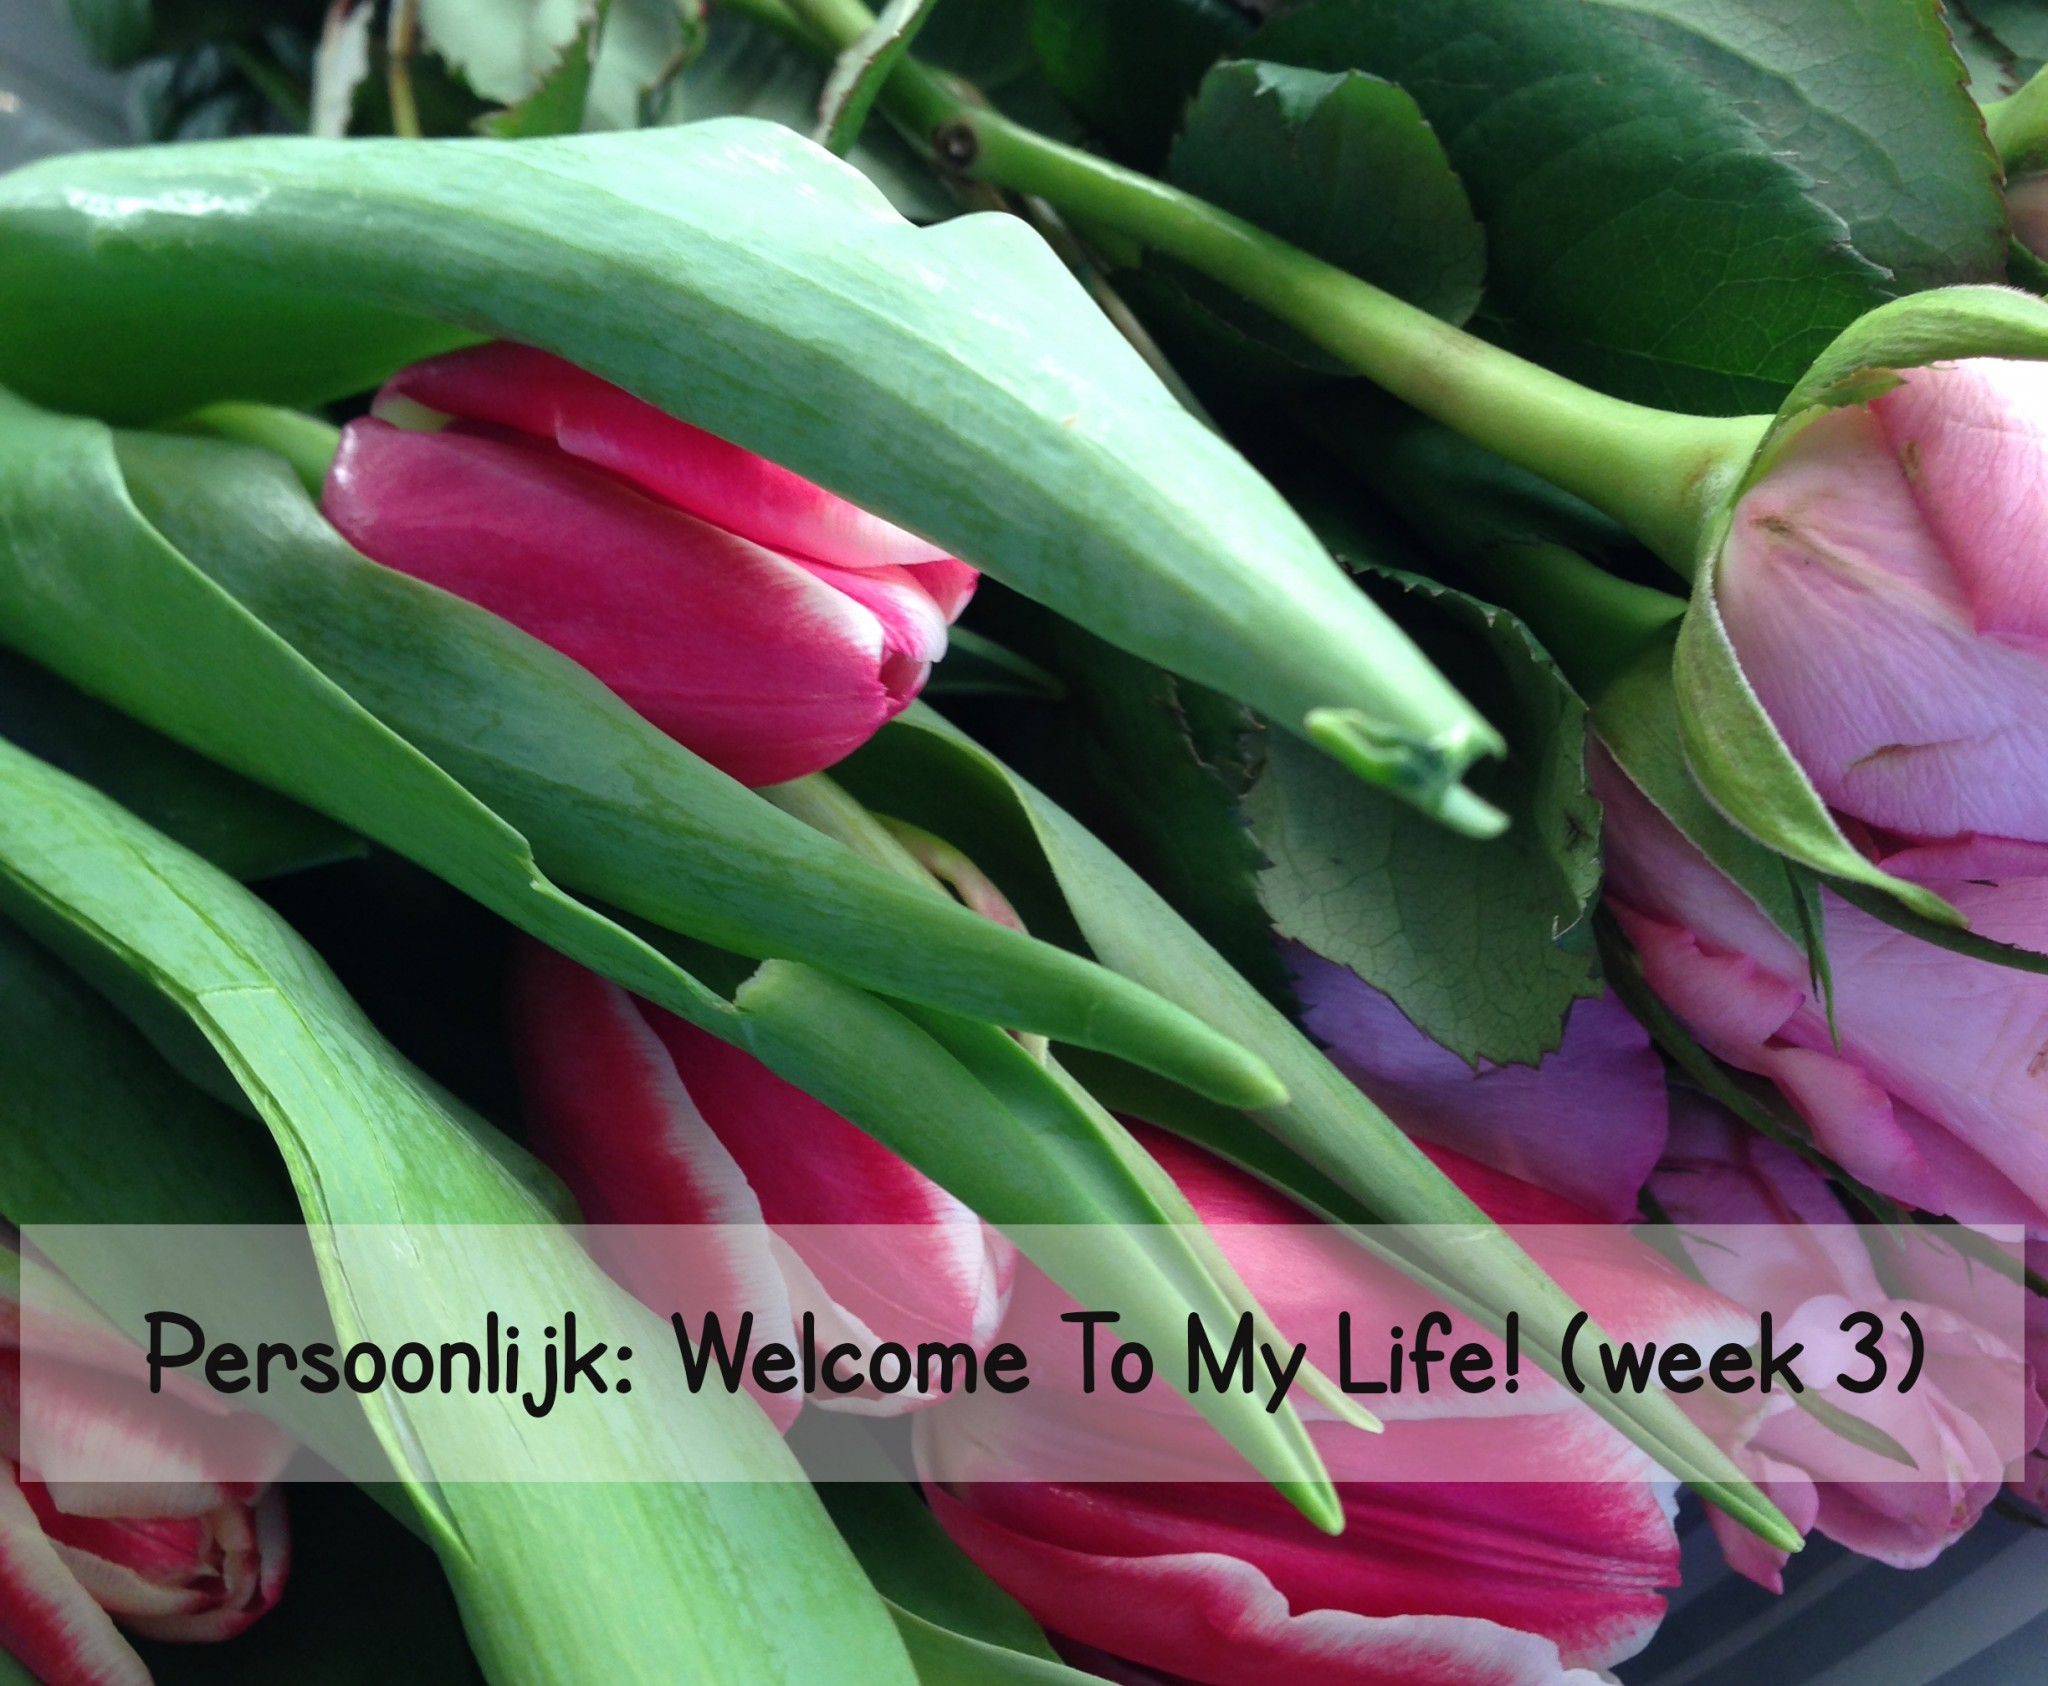 Persoonlijk: Welcome To My Life! (week 3)